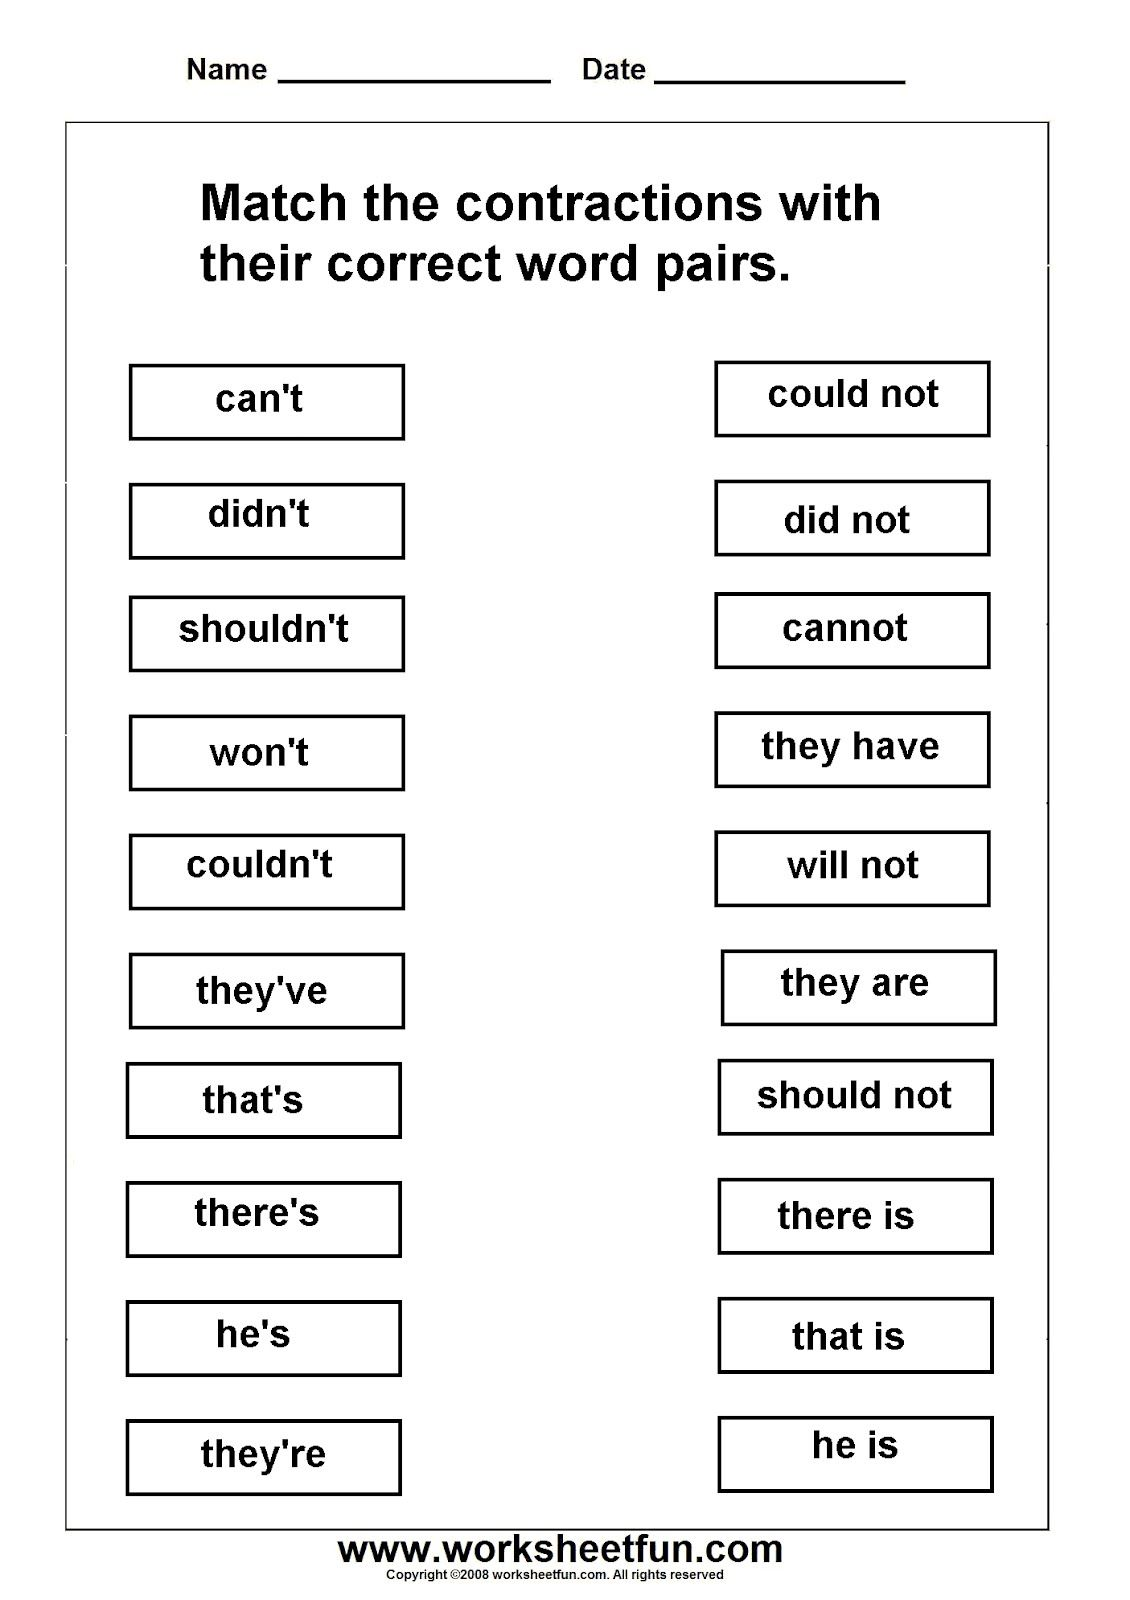 Pin By Retta Fislia On Short Forms 2nd Grade Worksheets Synonym Worksheet English Worksheets For Kids